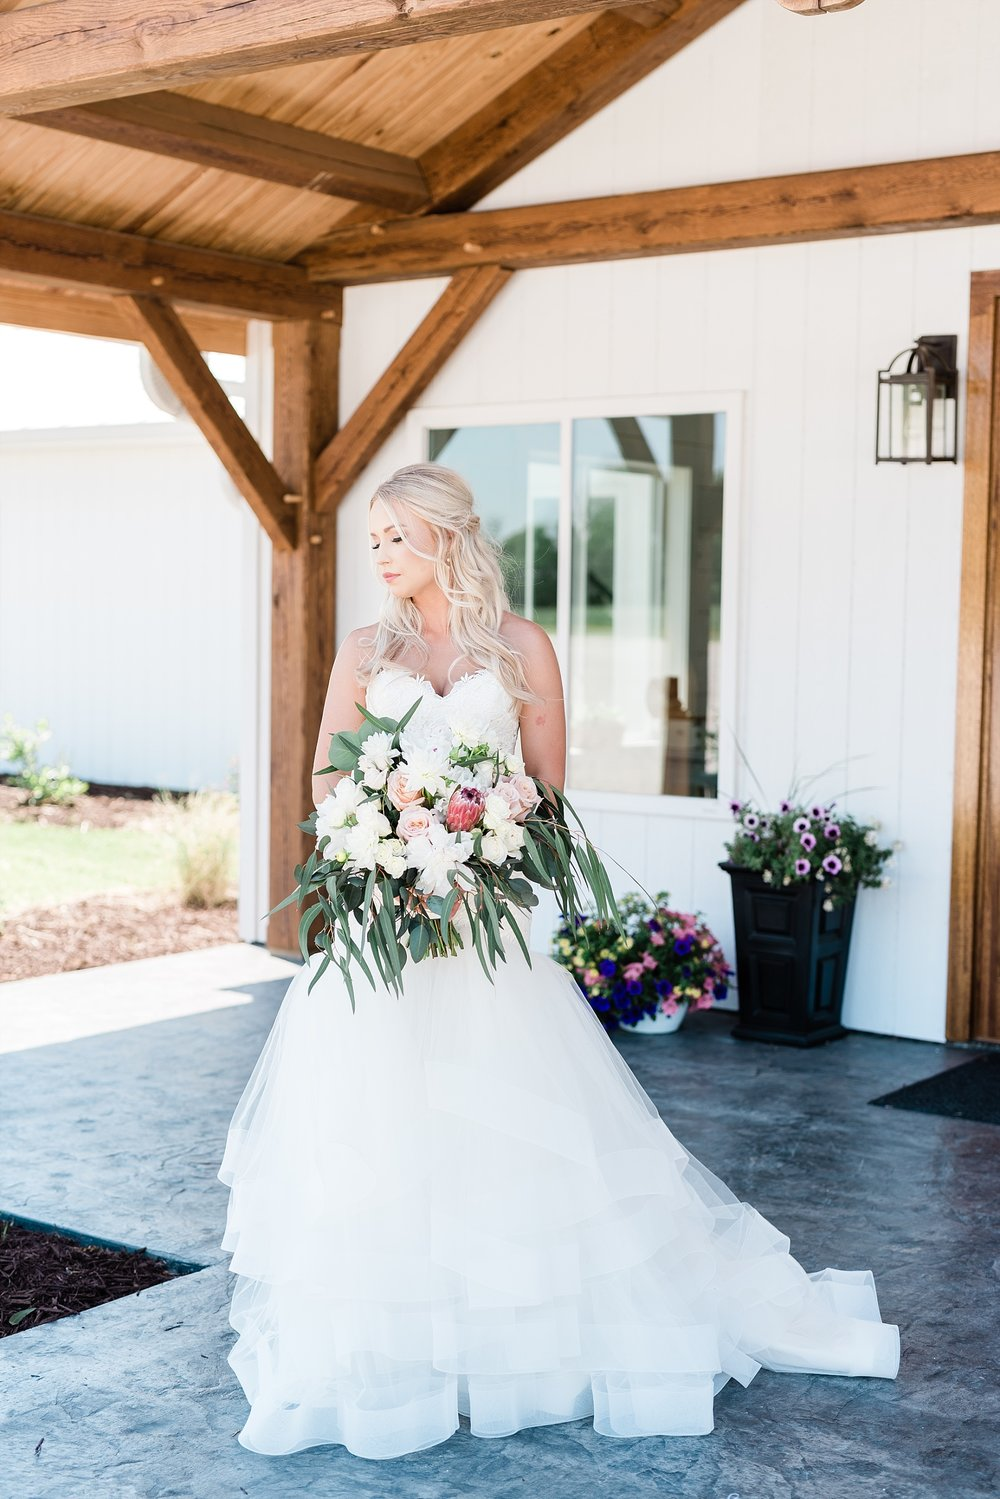 Stunning Heartfelt, Elegant, Fine Art, Chic, Outdoor Spring Wedding with Blush, Cream, Greenery, Rose Gold, and Sequins at Emerson Fields Venue by Kelsi Kliethermes Photography_0019.jpg